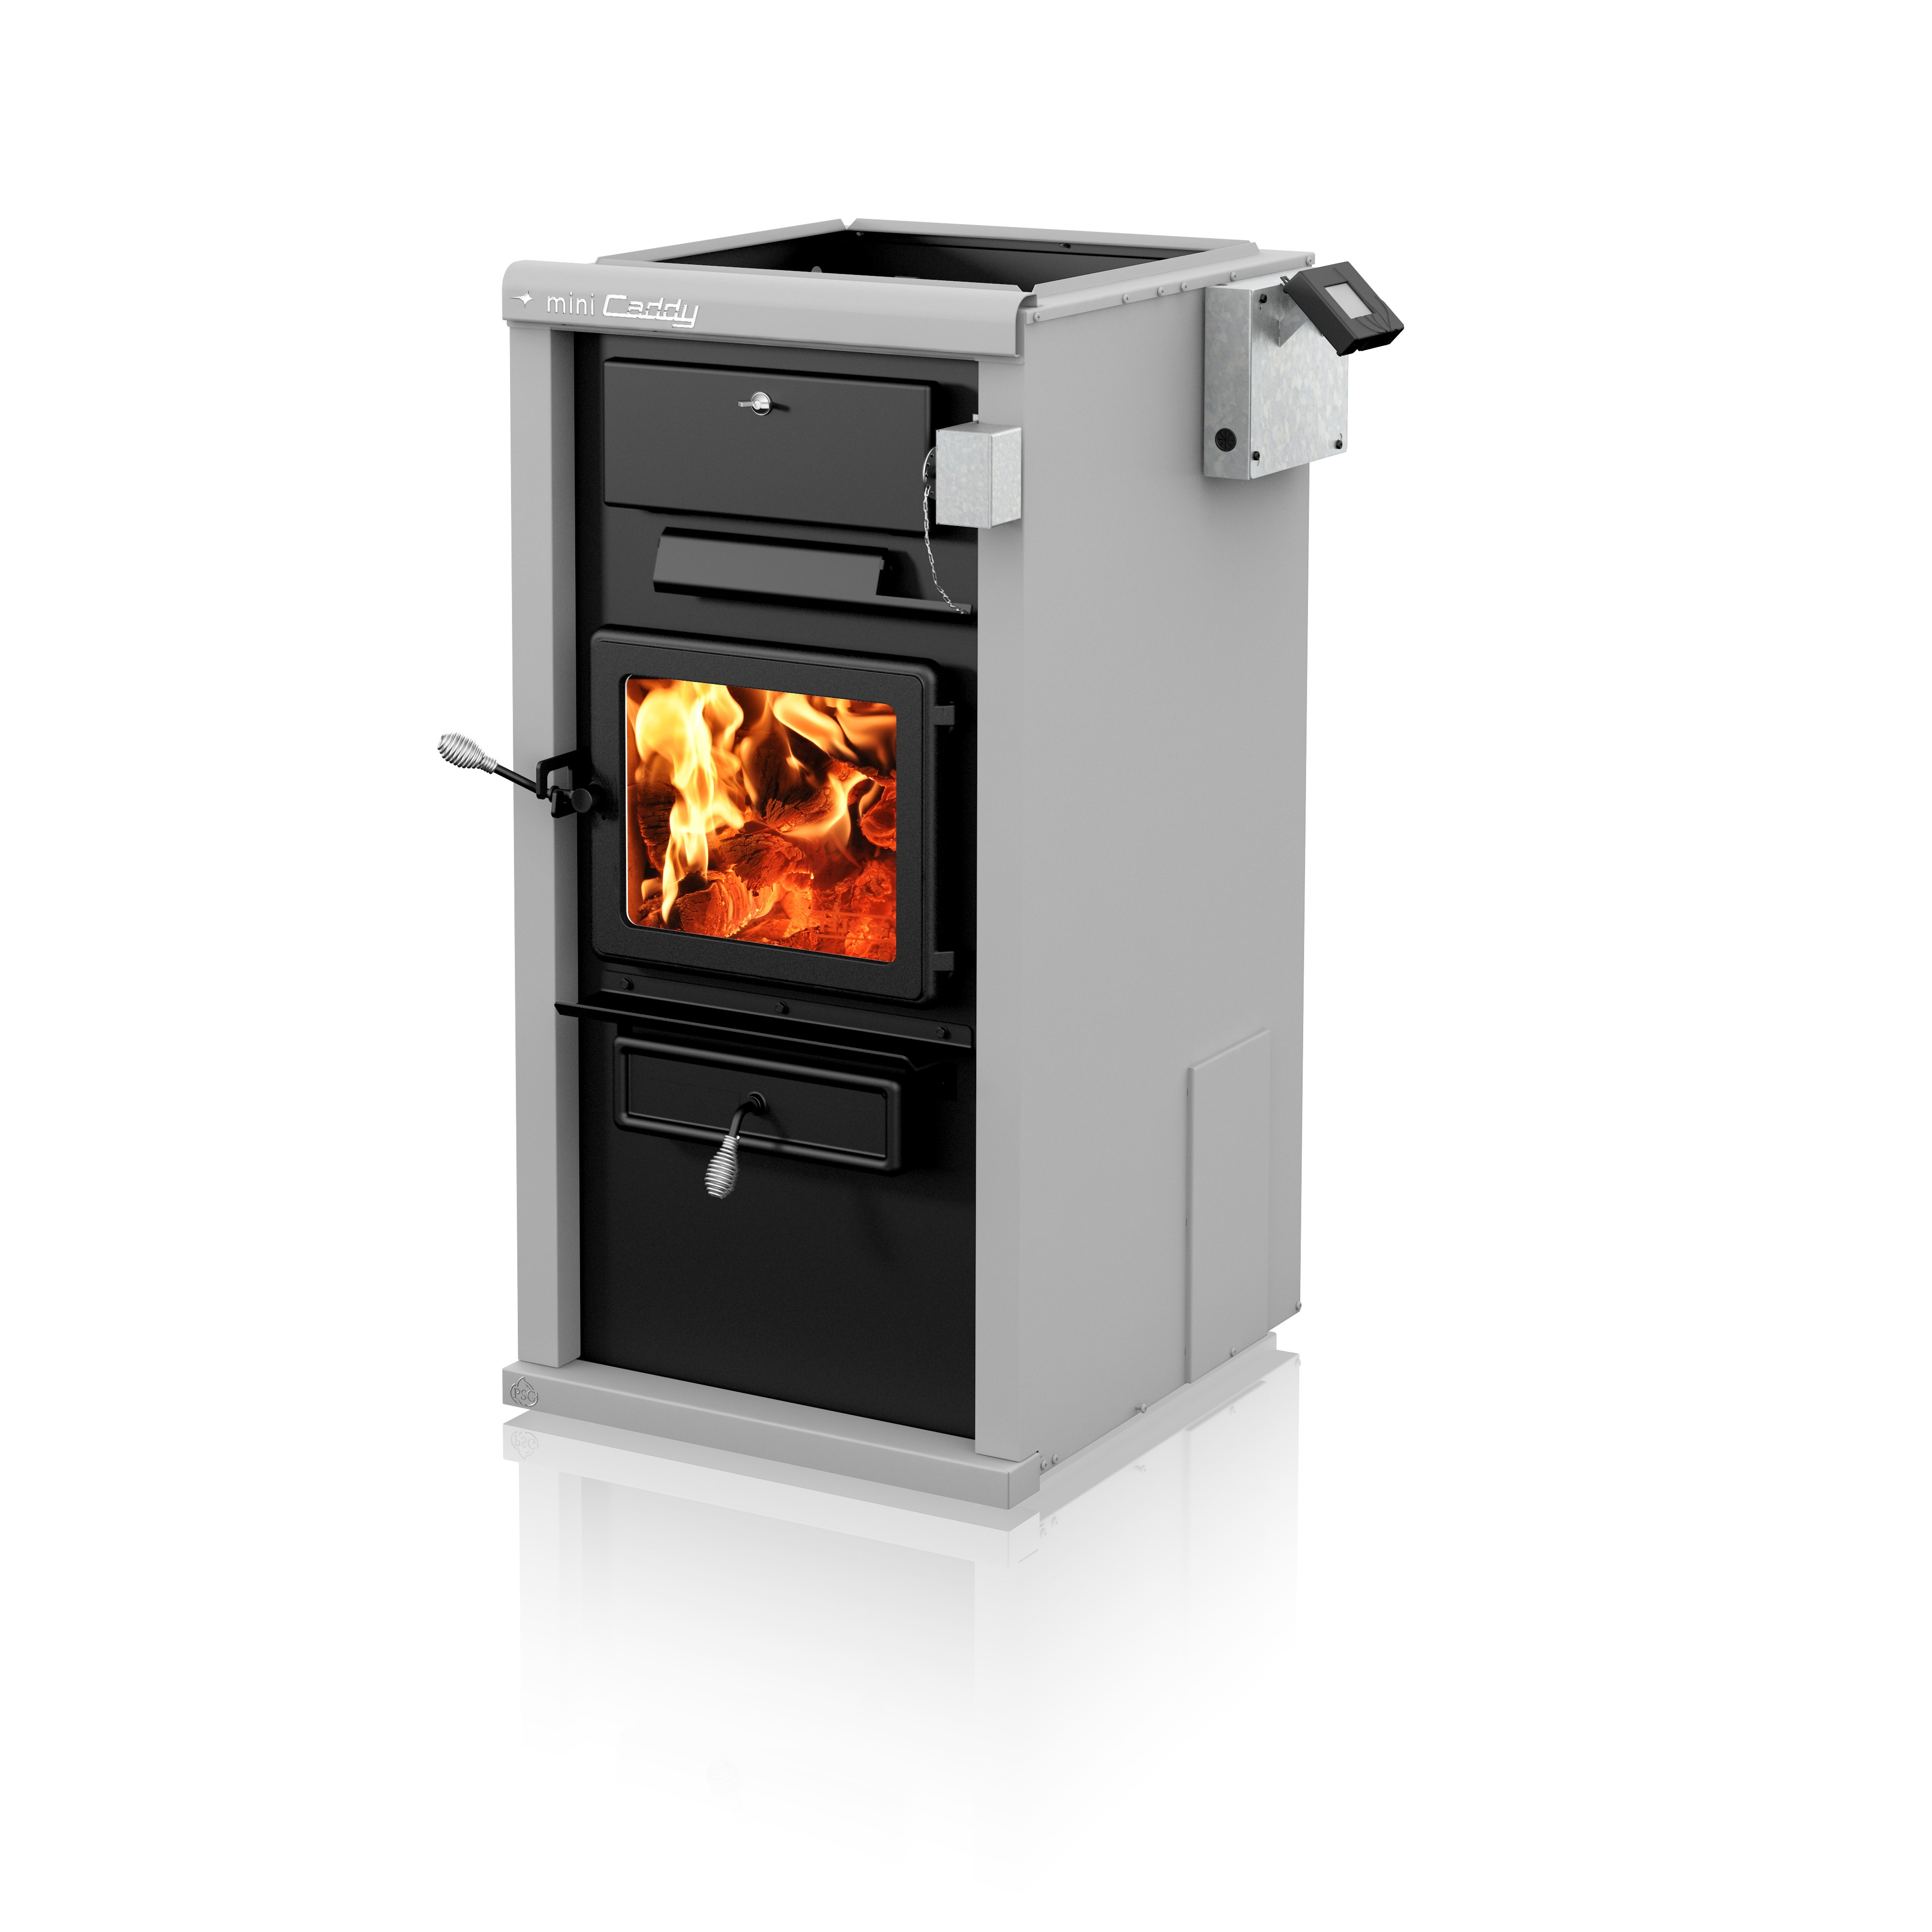 Wood Furnace For Home Mini Caddy Caddy Furnaces